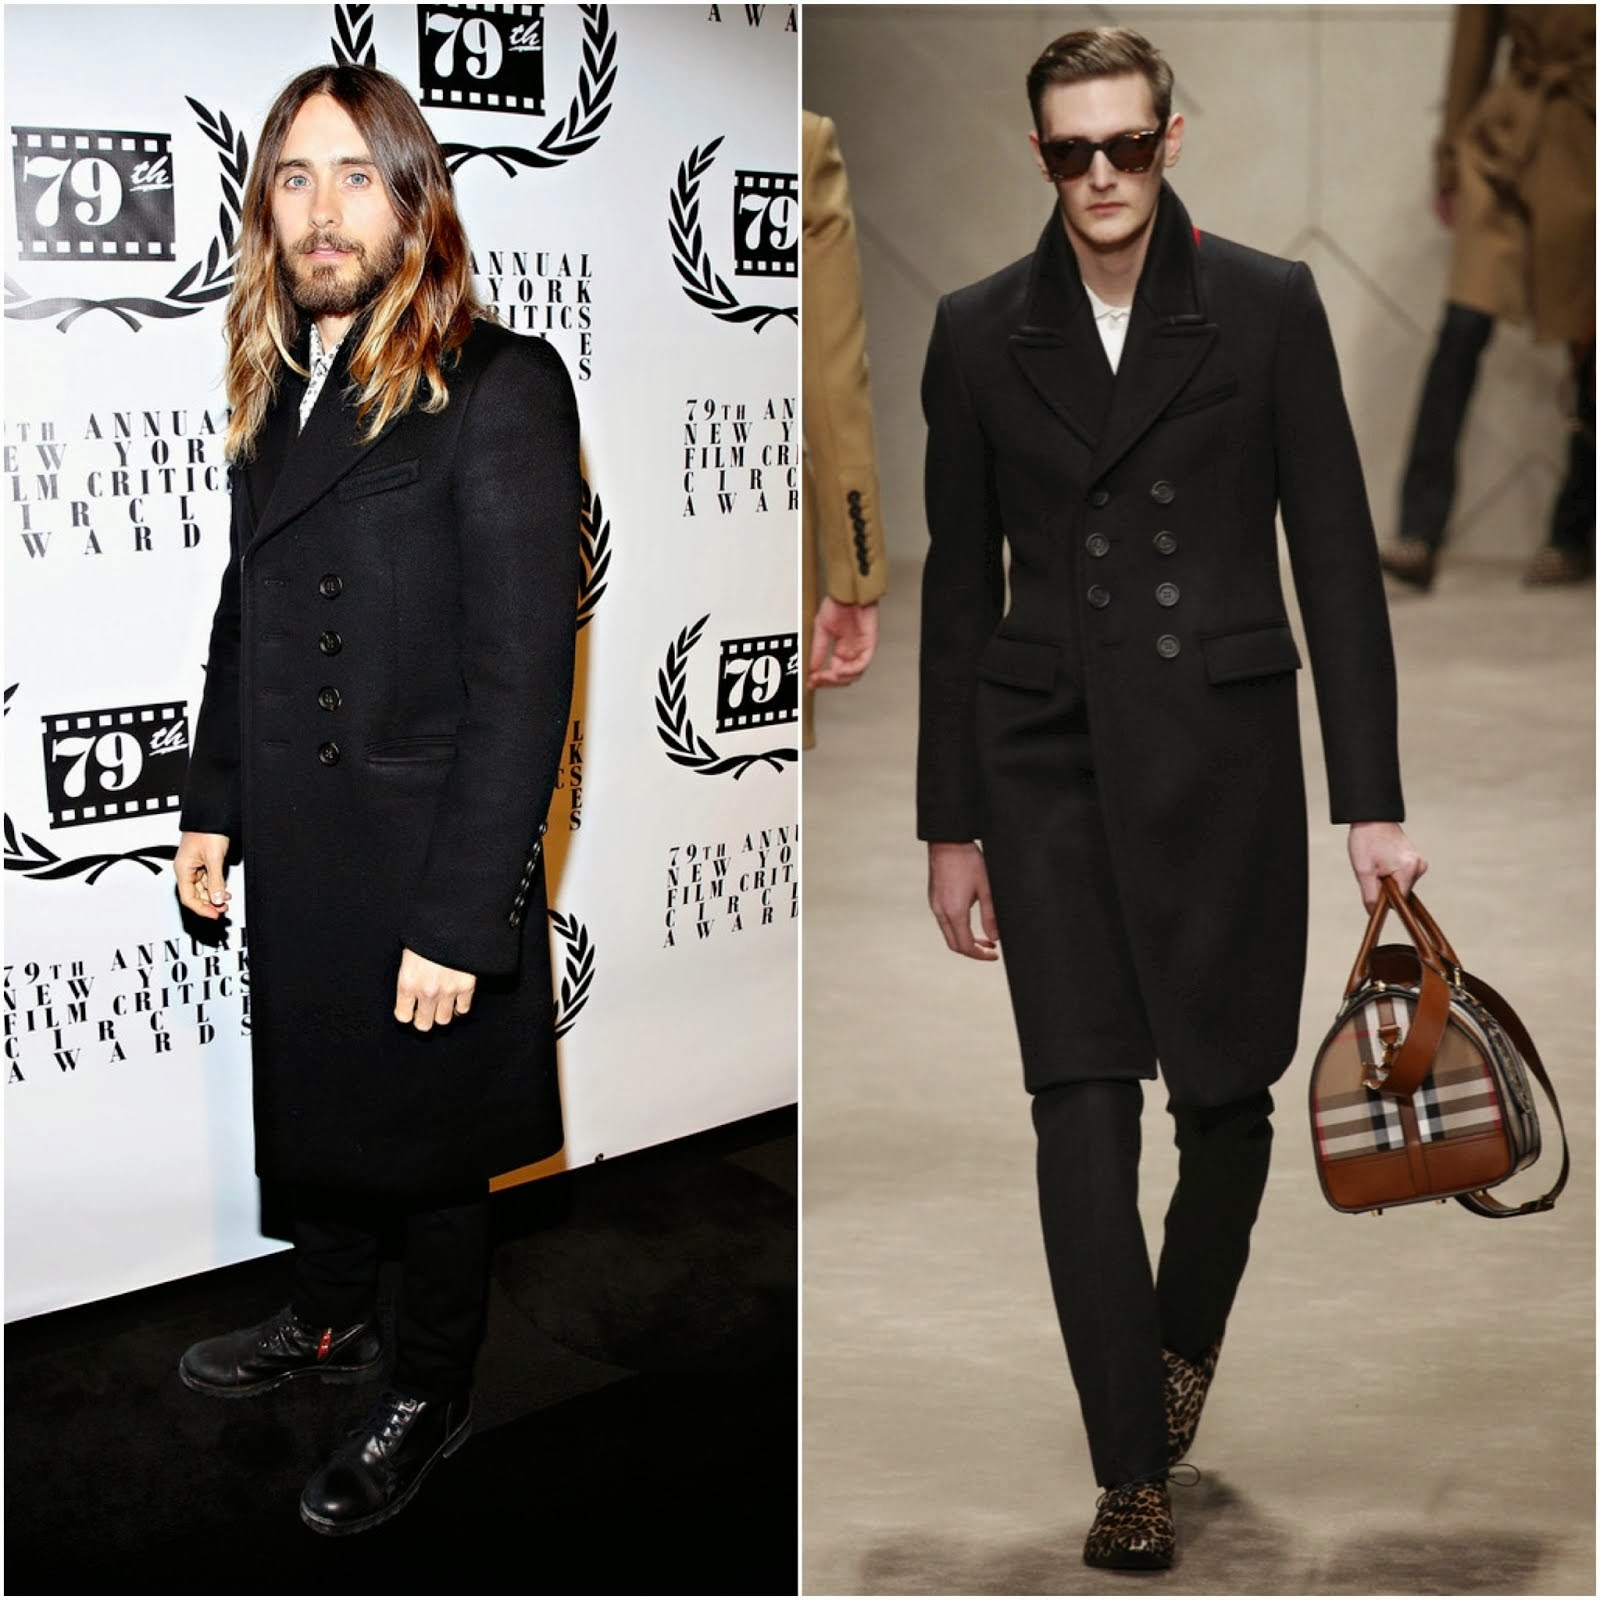 Jared Leto in Burberry Prorsum FW13 BONDED CASHMERE TOPCOAT - 2013 New York Film Critics Circle Awards Ceremony